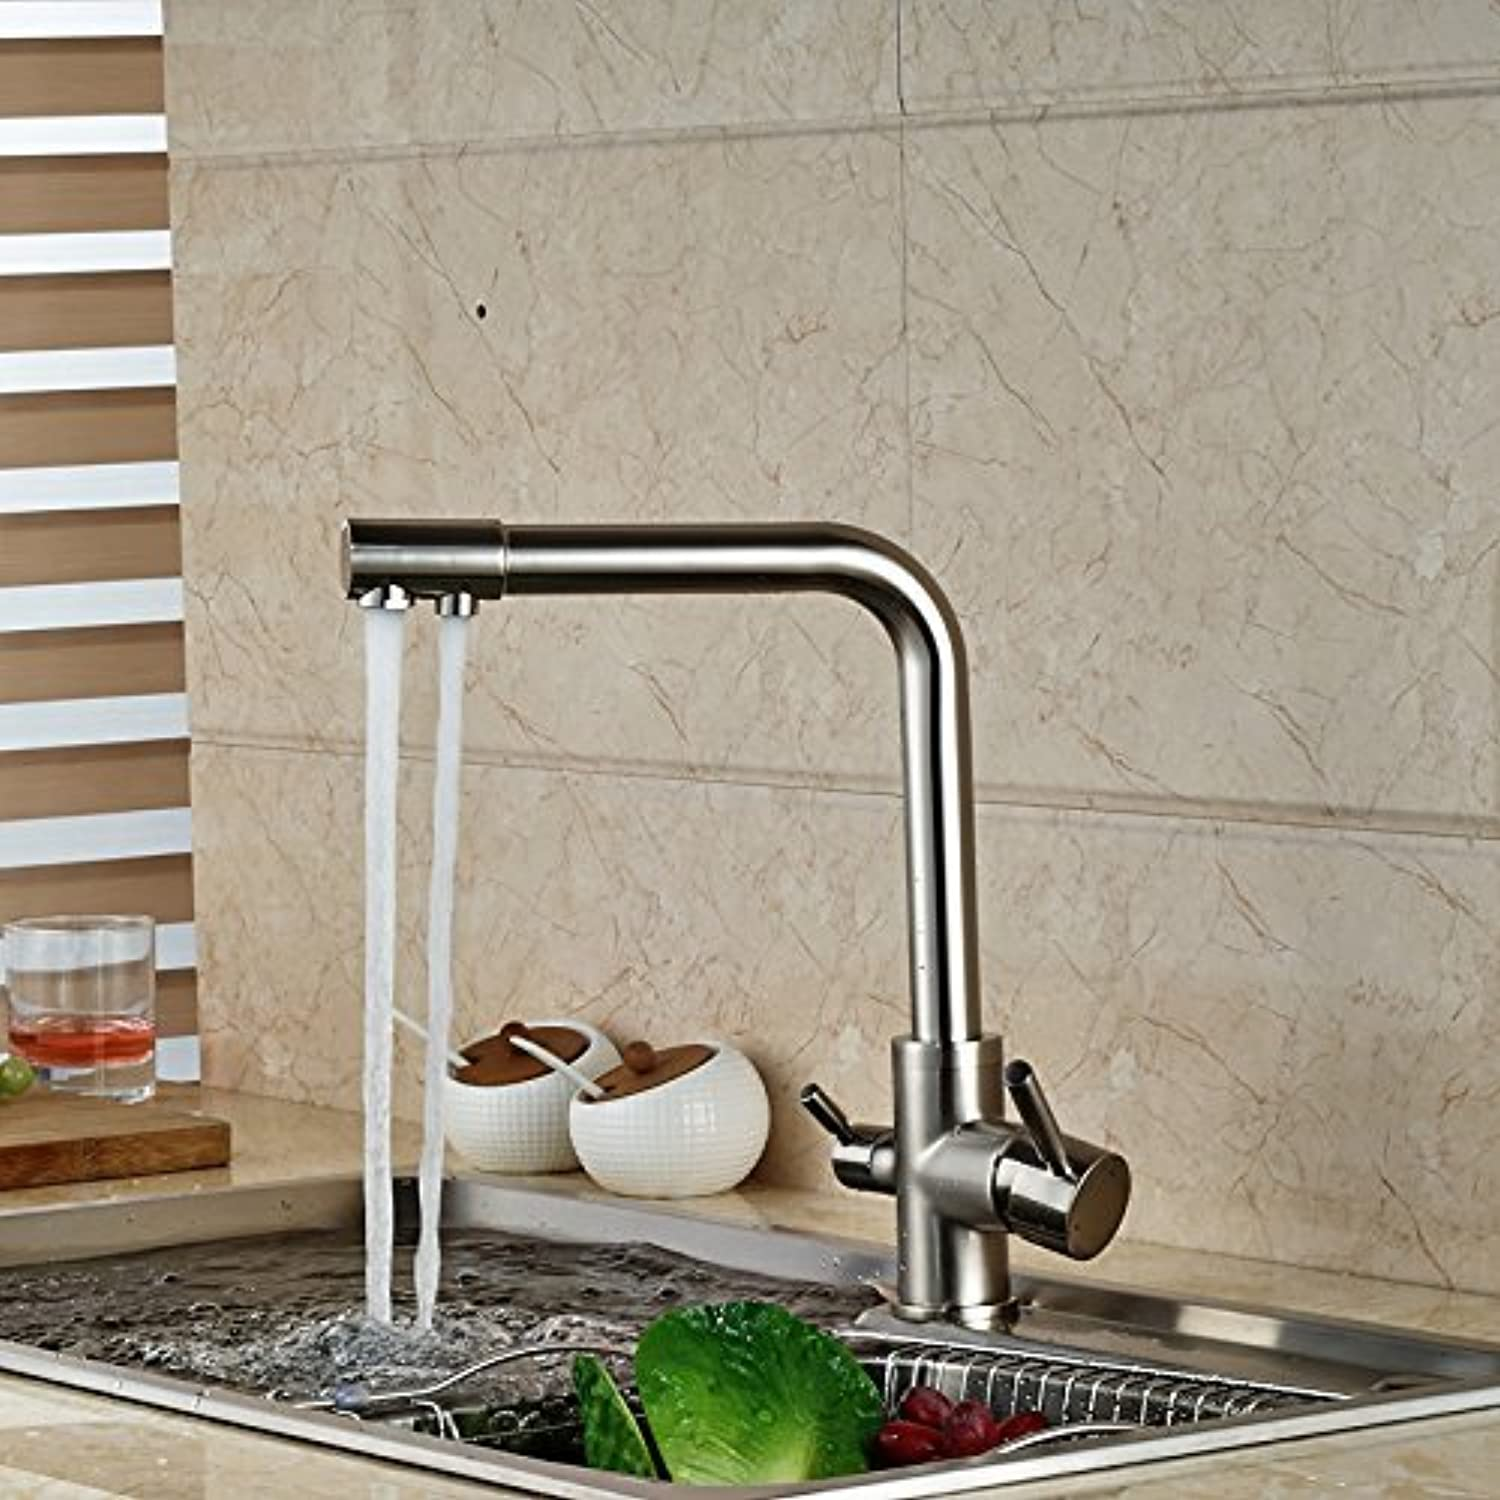 The Brushed Nickel Dual tulles Kitchen Bath Rooms Fitting Mounted Bridge Pure Drinking Water taps, Water Faucet